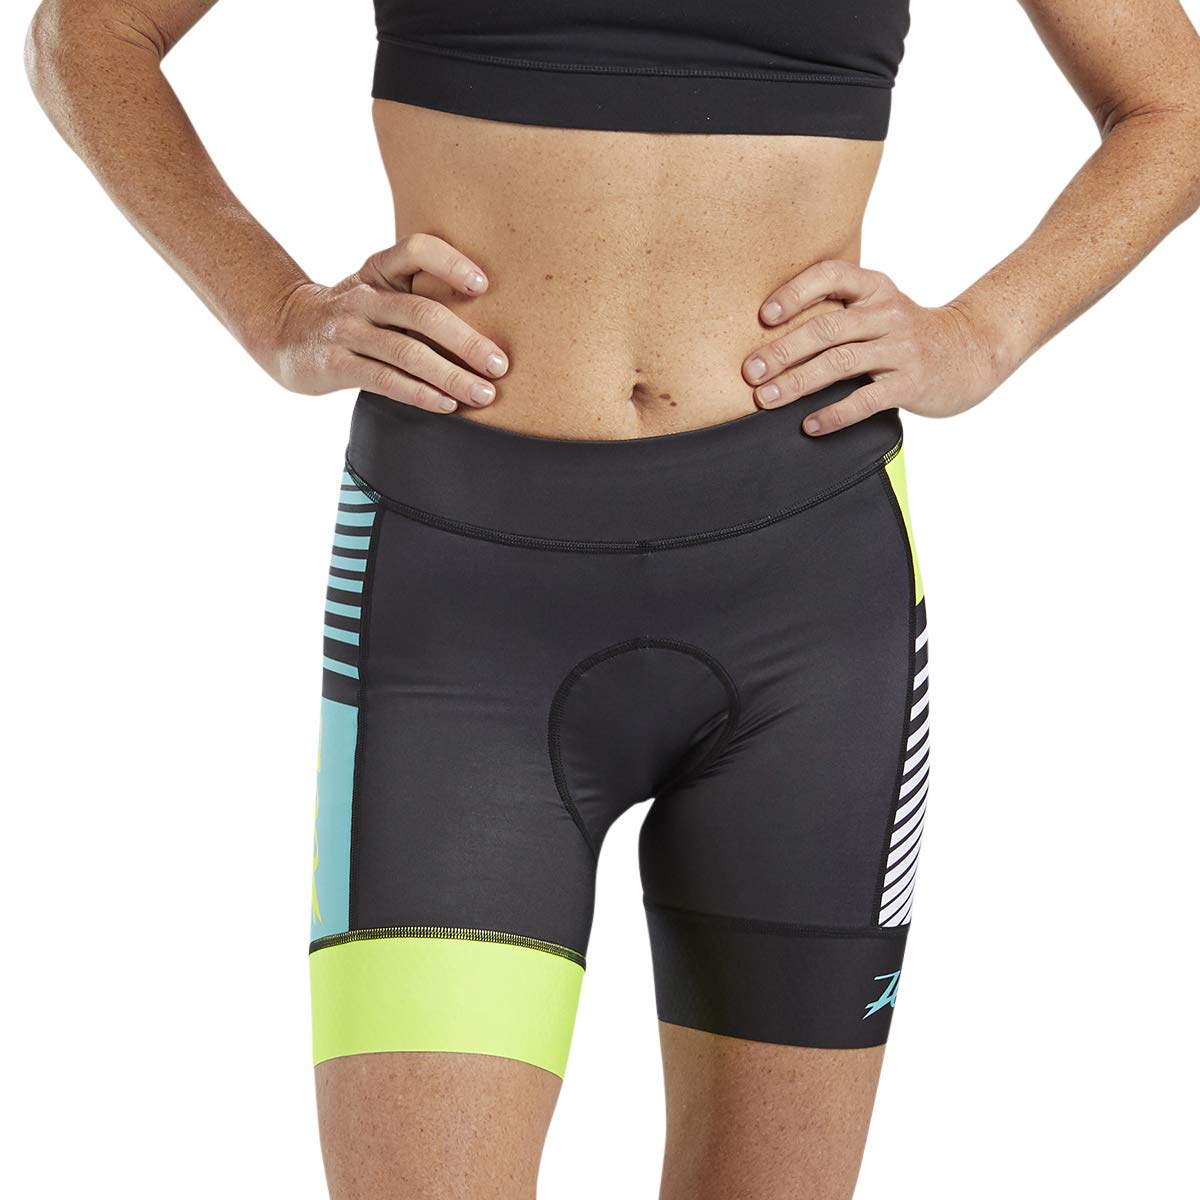 Zoot LTD Women's 7-Inch Cycling Shorts – Performance Cycle Shorts with TMF Chamois (Team, X Small)